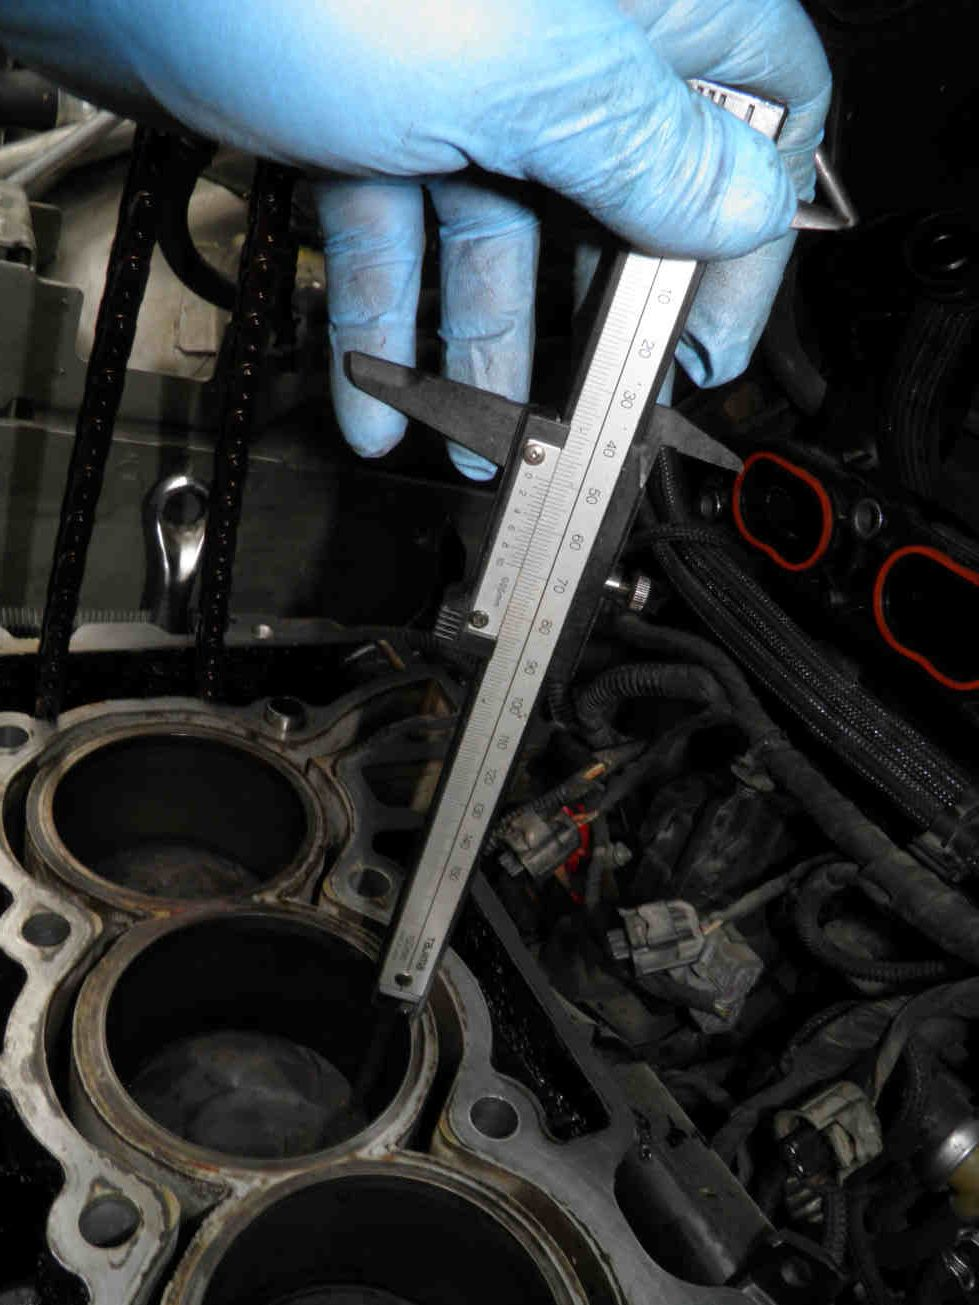 EP6 engine (Peugeot 1 6 THP) setting and pegging for timing